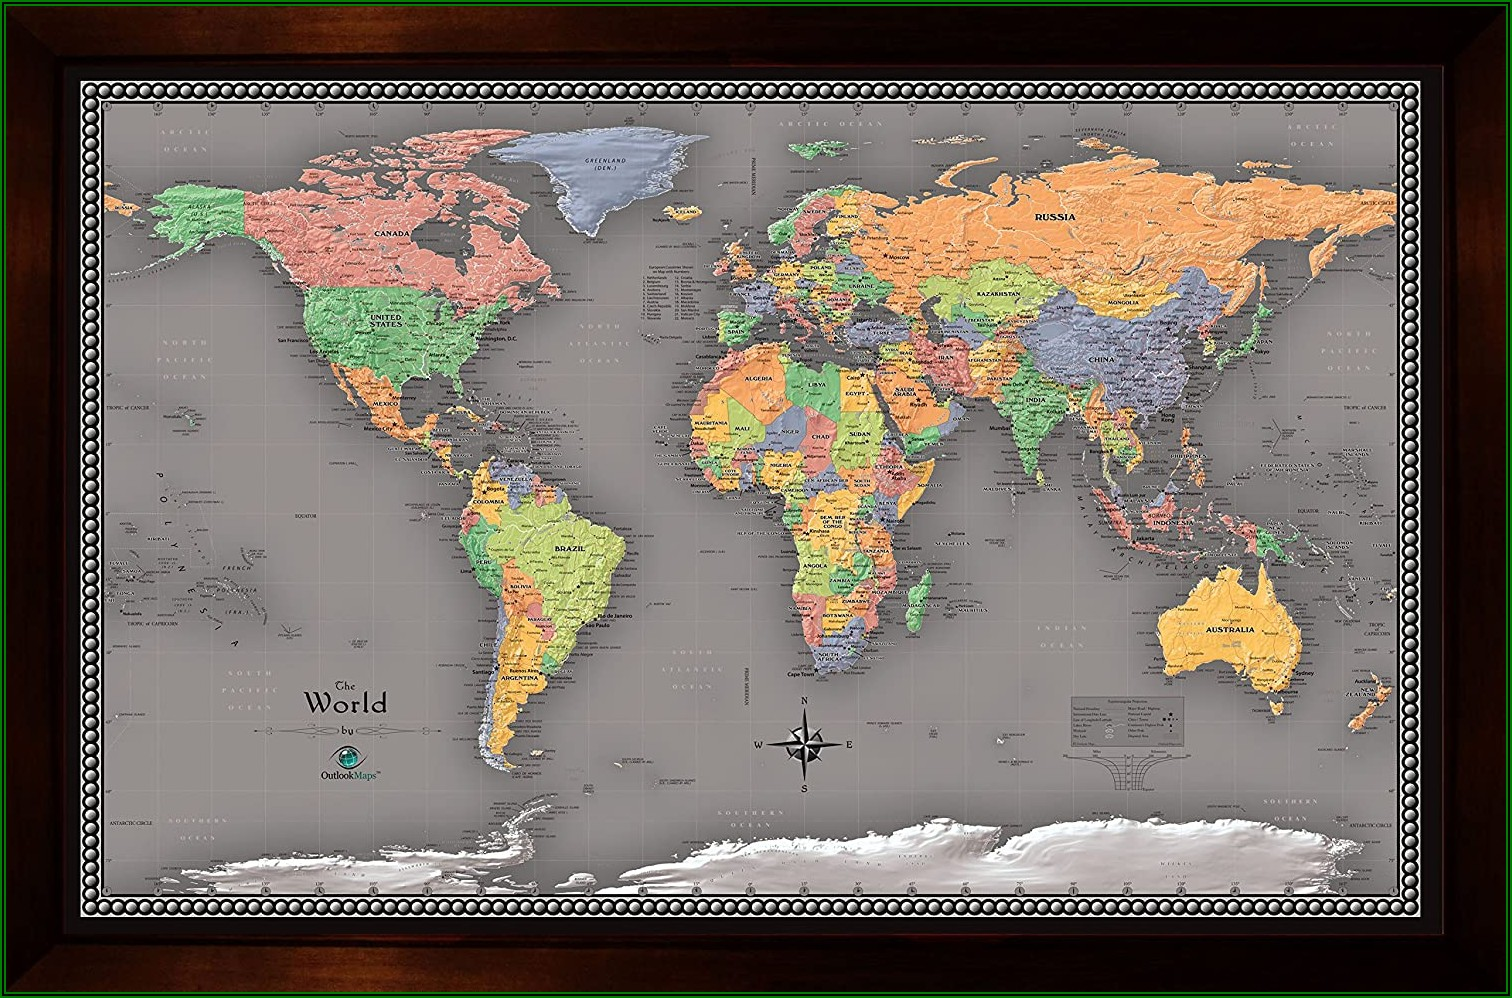 World Map Framed Poster Wall Art 37x25 Brown